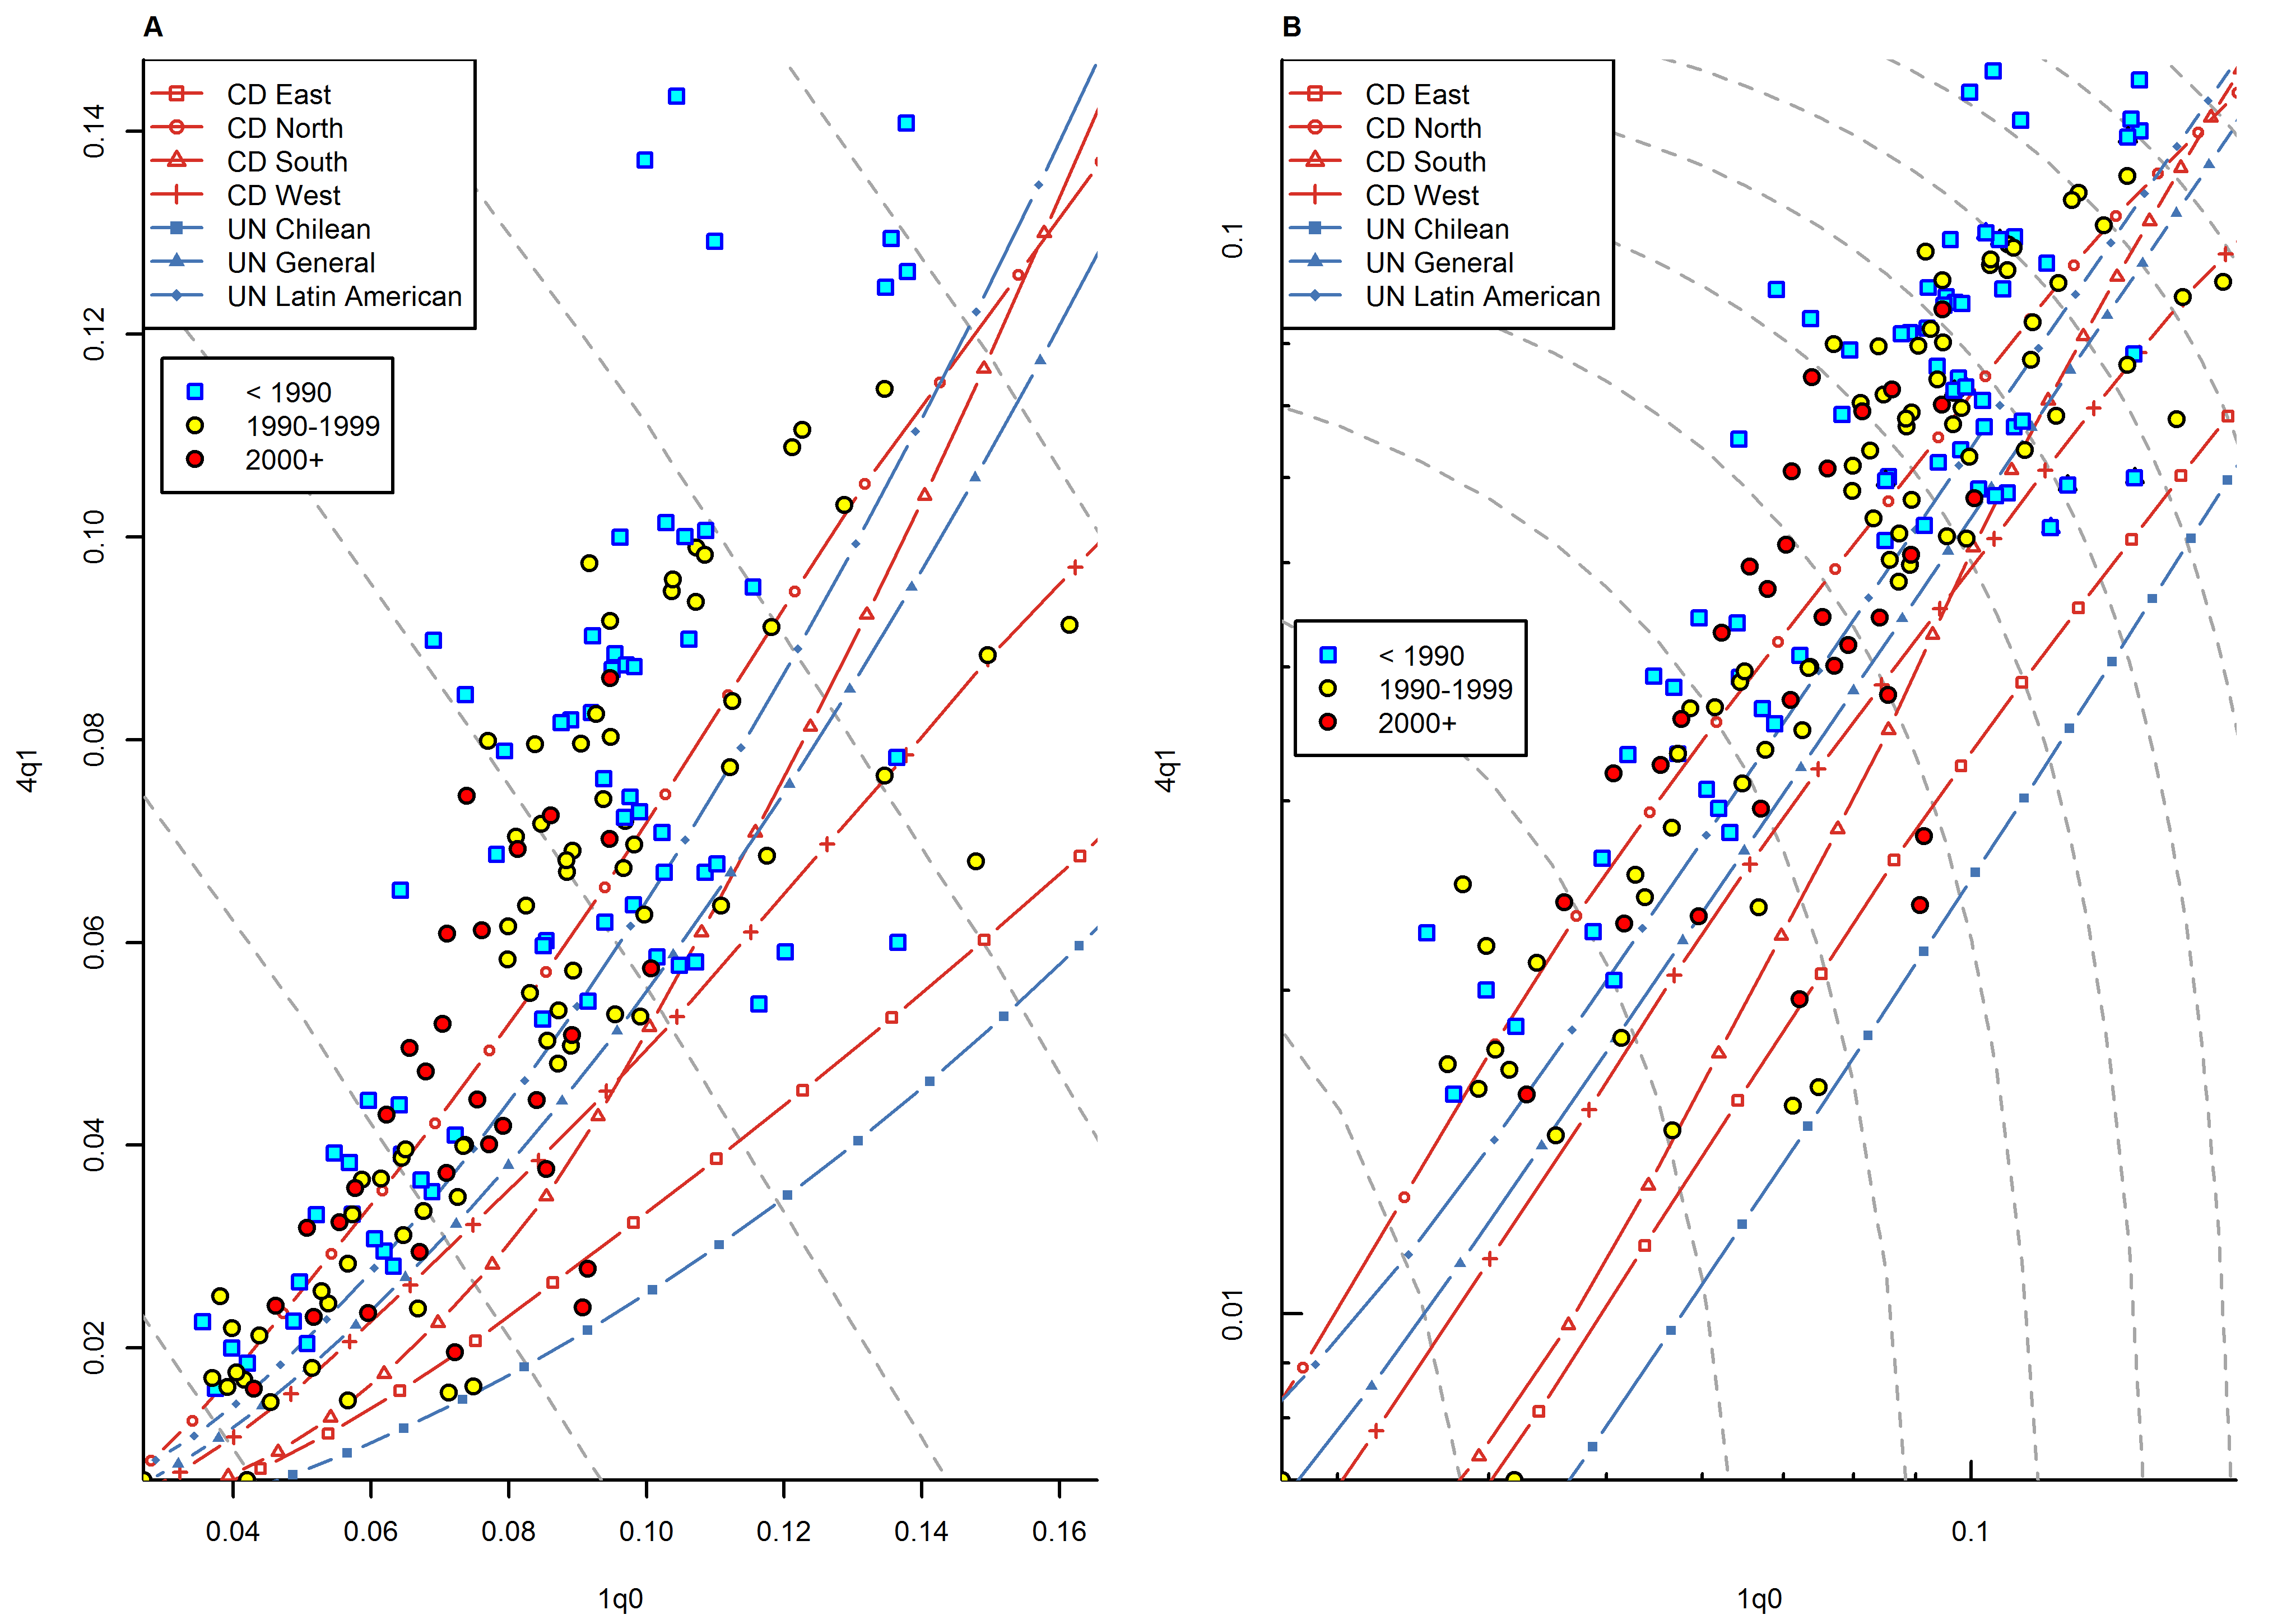 Relationship between <sub>1</sub><i>q</i><sub>0</sub> and <sub>4</sub><i>q</i><sub>1</sub> in WFS/DHS data for countries with high current prevalence of HIV (&gt;5%), by time period (&lt;1990, 1990s, 2000+).